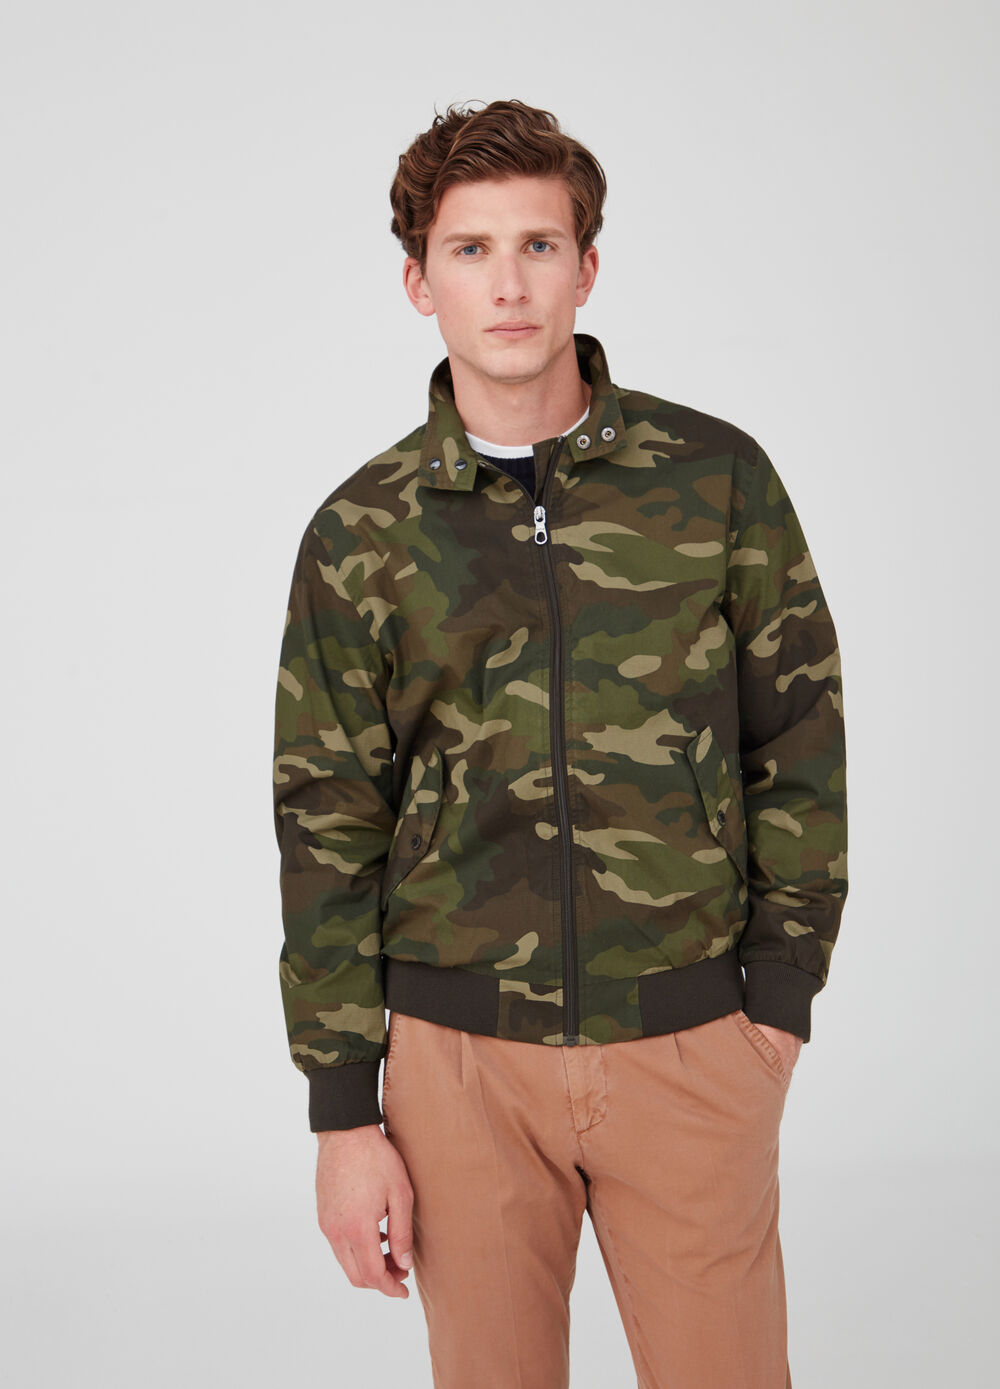 Rumford camo jacket with high neck